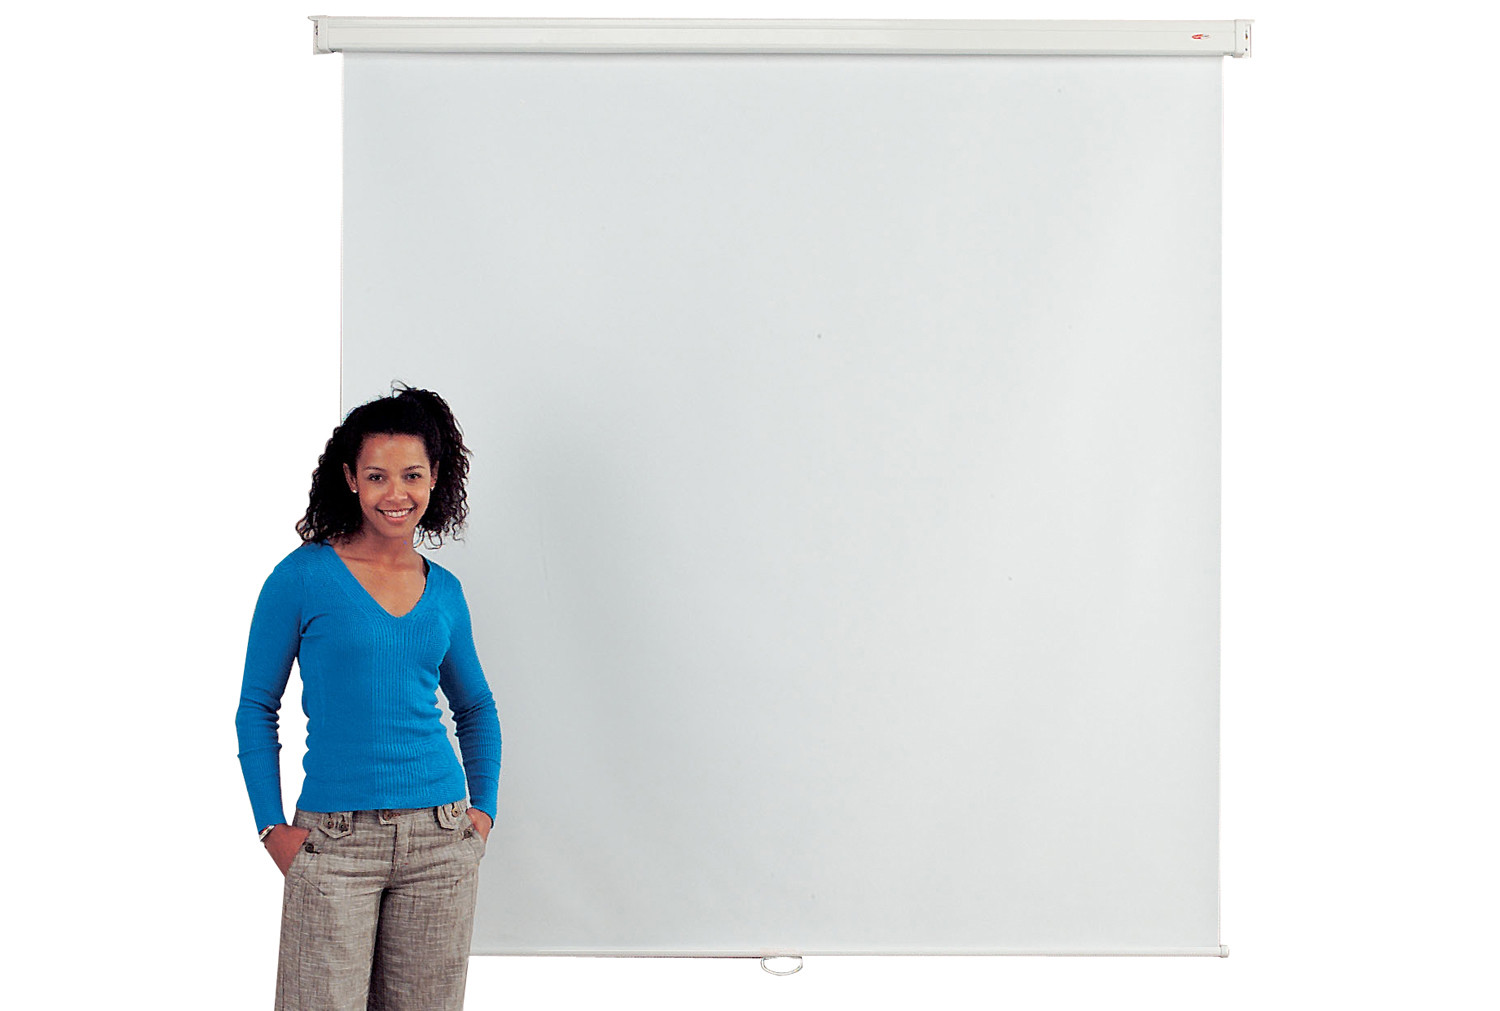 Economy projection screens